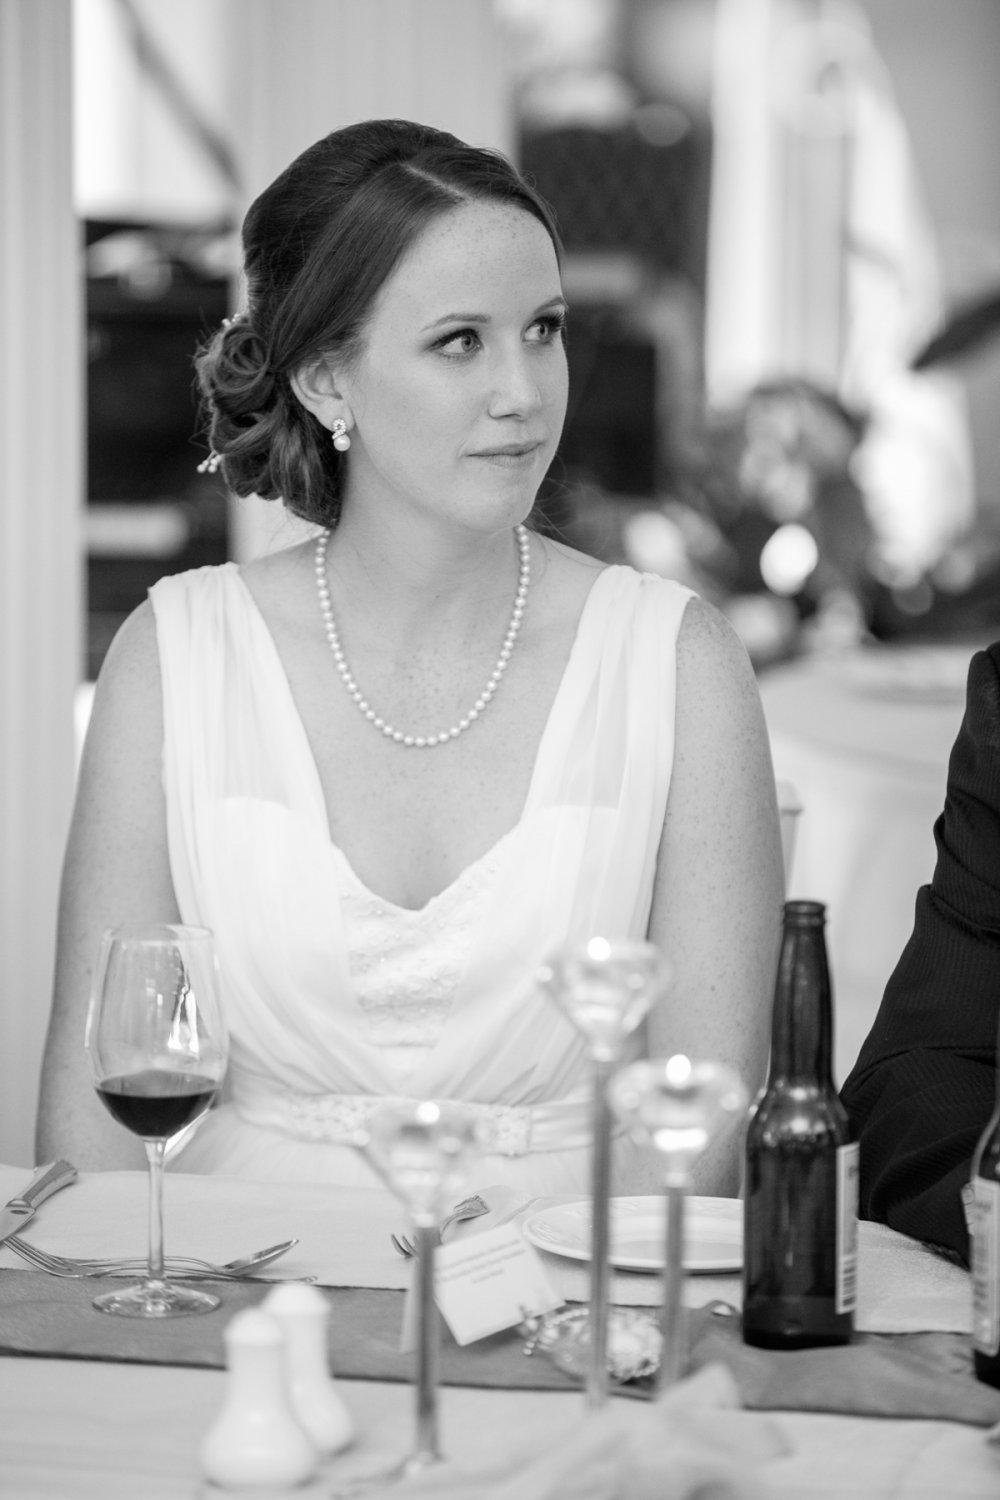 JF Hannigan Wedding Photography: Elise and Scott:  a trip to remember 48